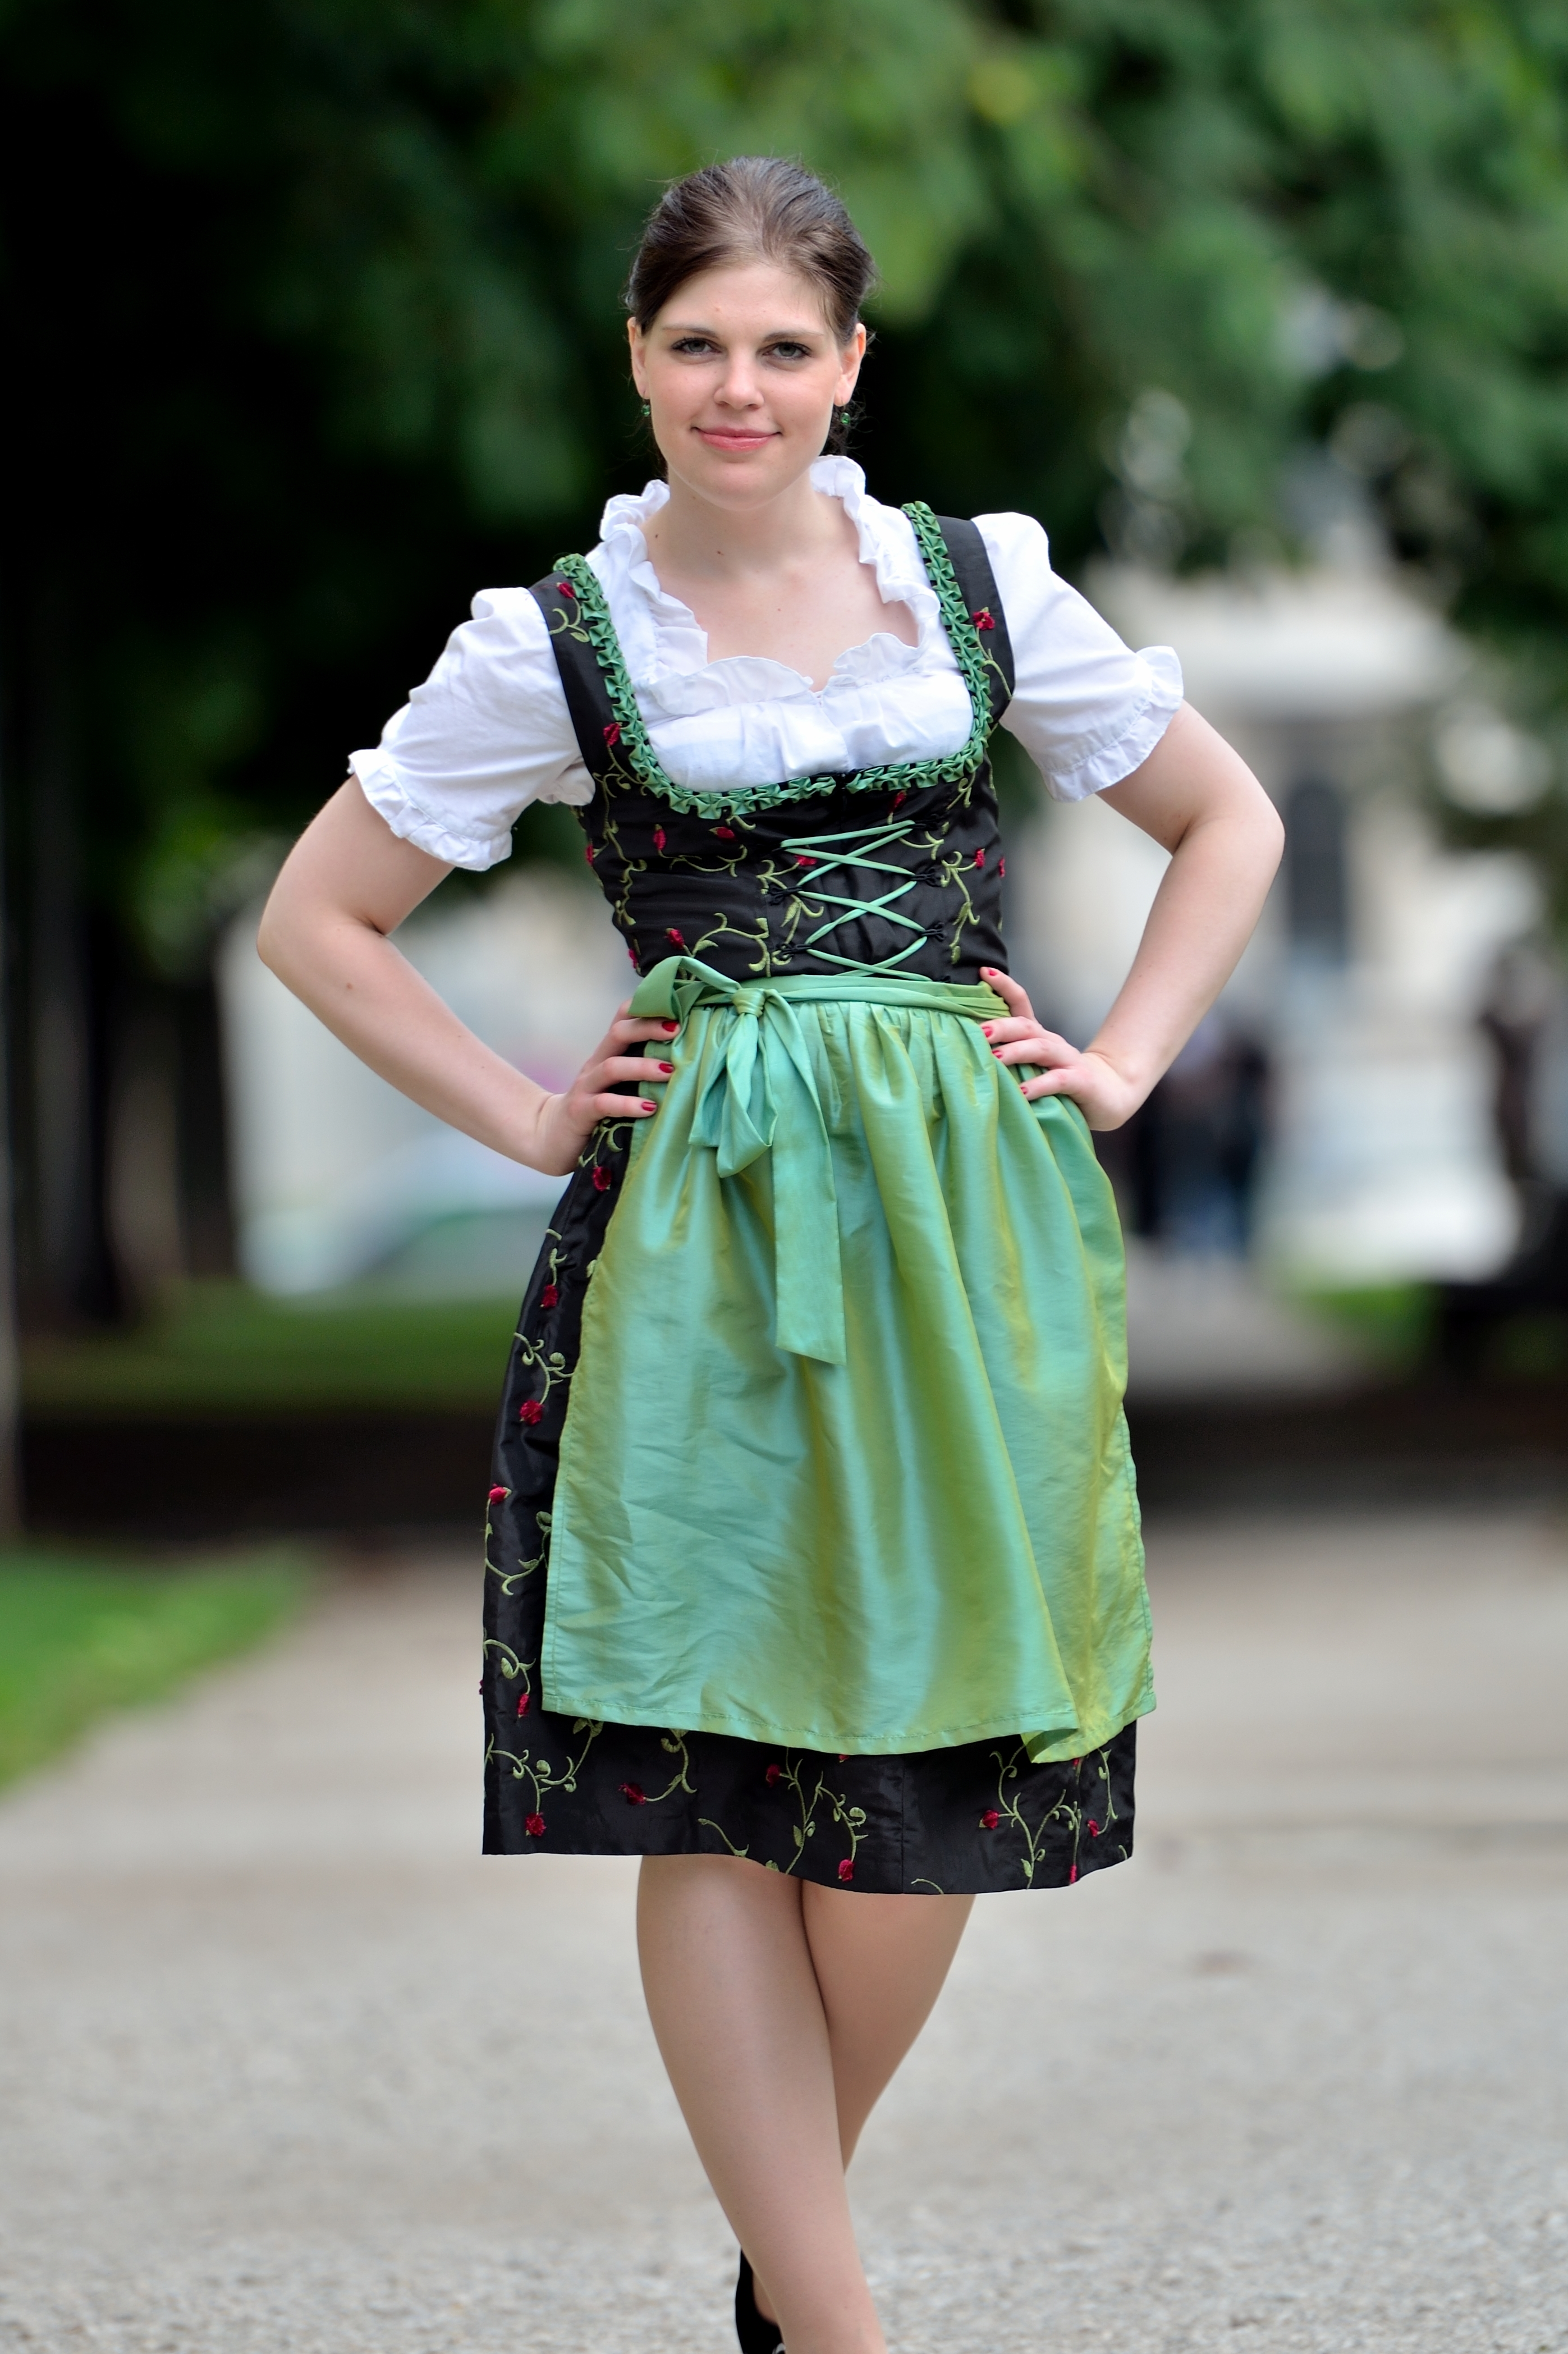 On the picture is a woman. The woman is wearing a Dirndl Dress with apron and Dirndl blouse.